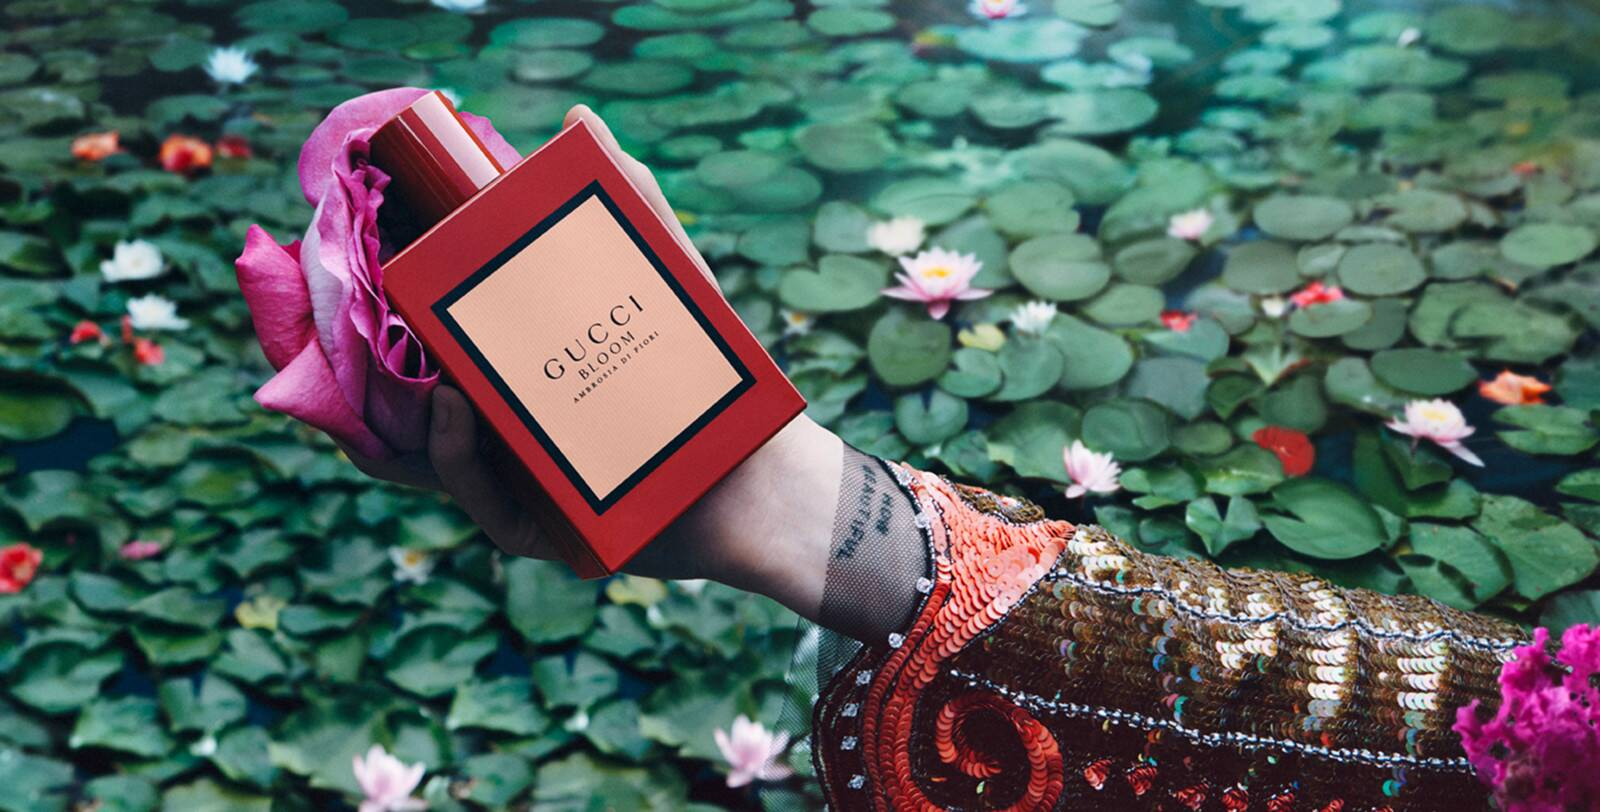 Gucci_Bloom_campaign_2020_Fashionela (3)